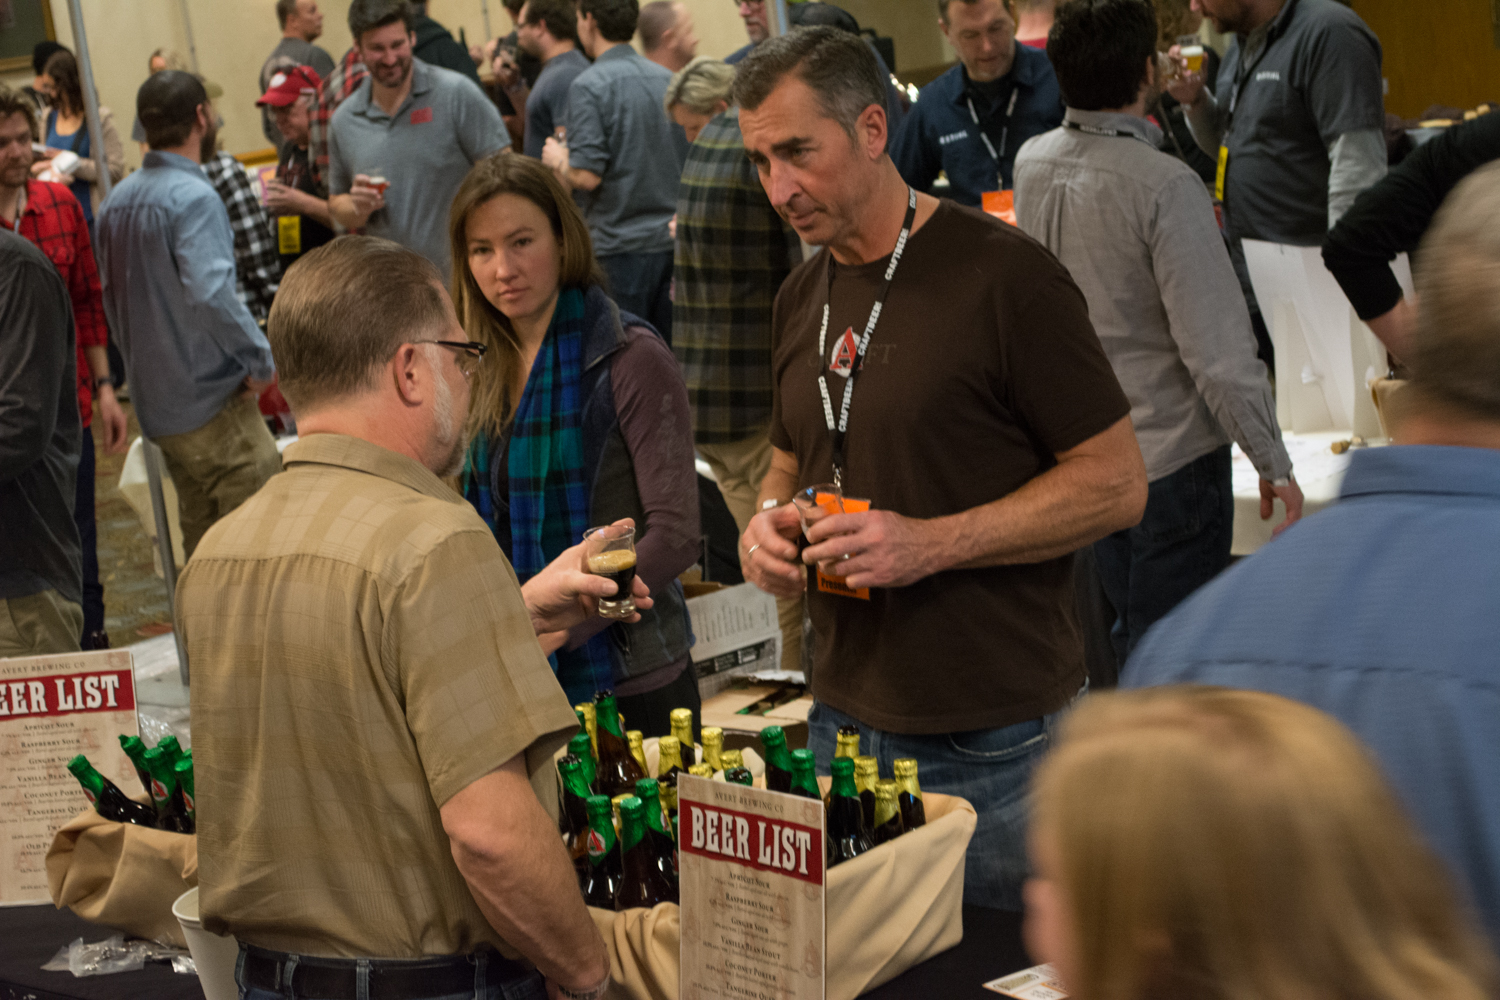 Brewery owners such as Adam Avery (pictured) could be found front and center, discussing their beers with enthusiasts.